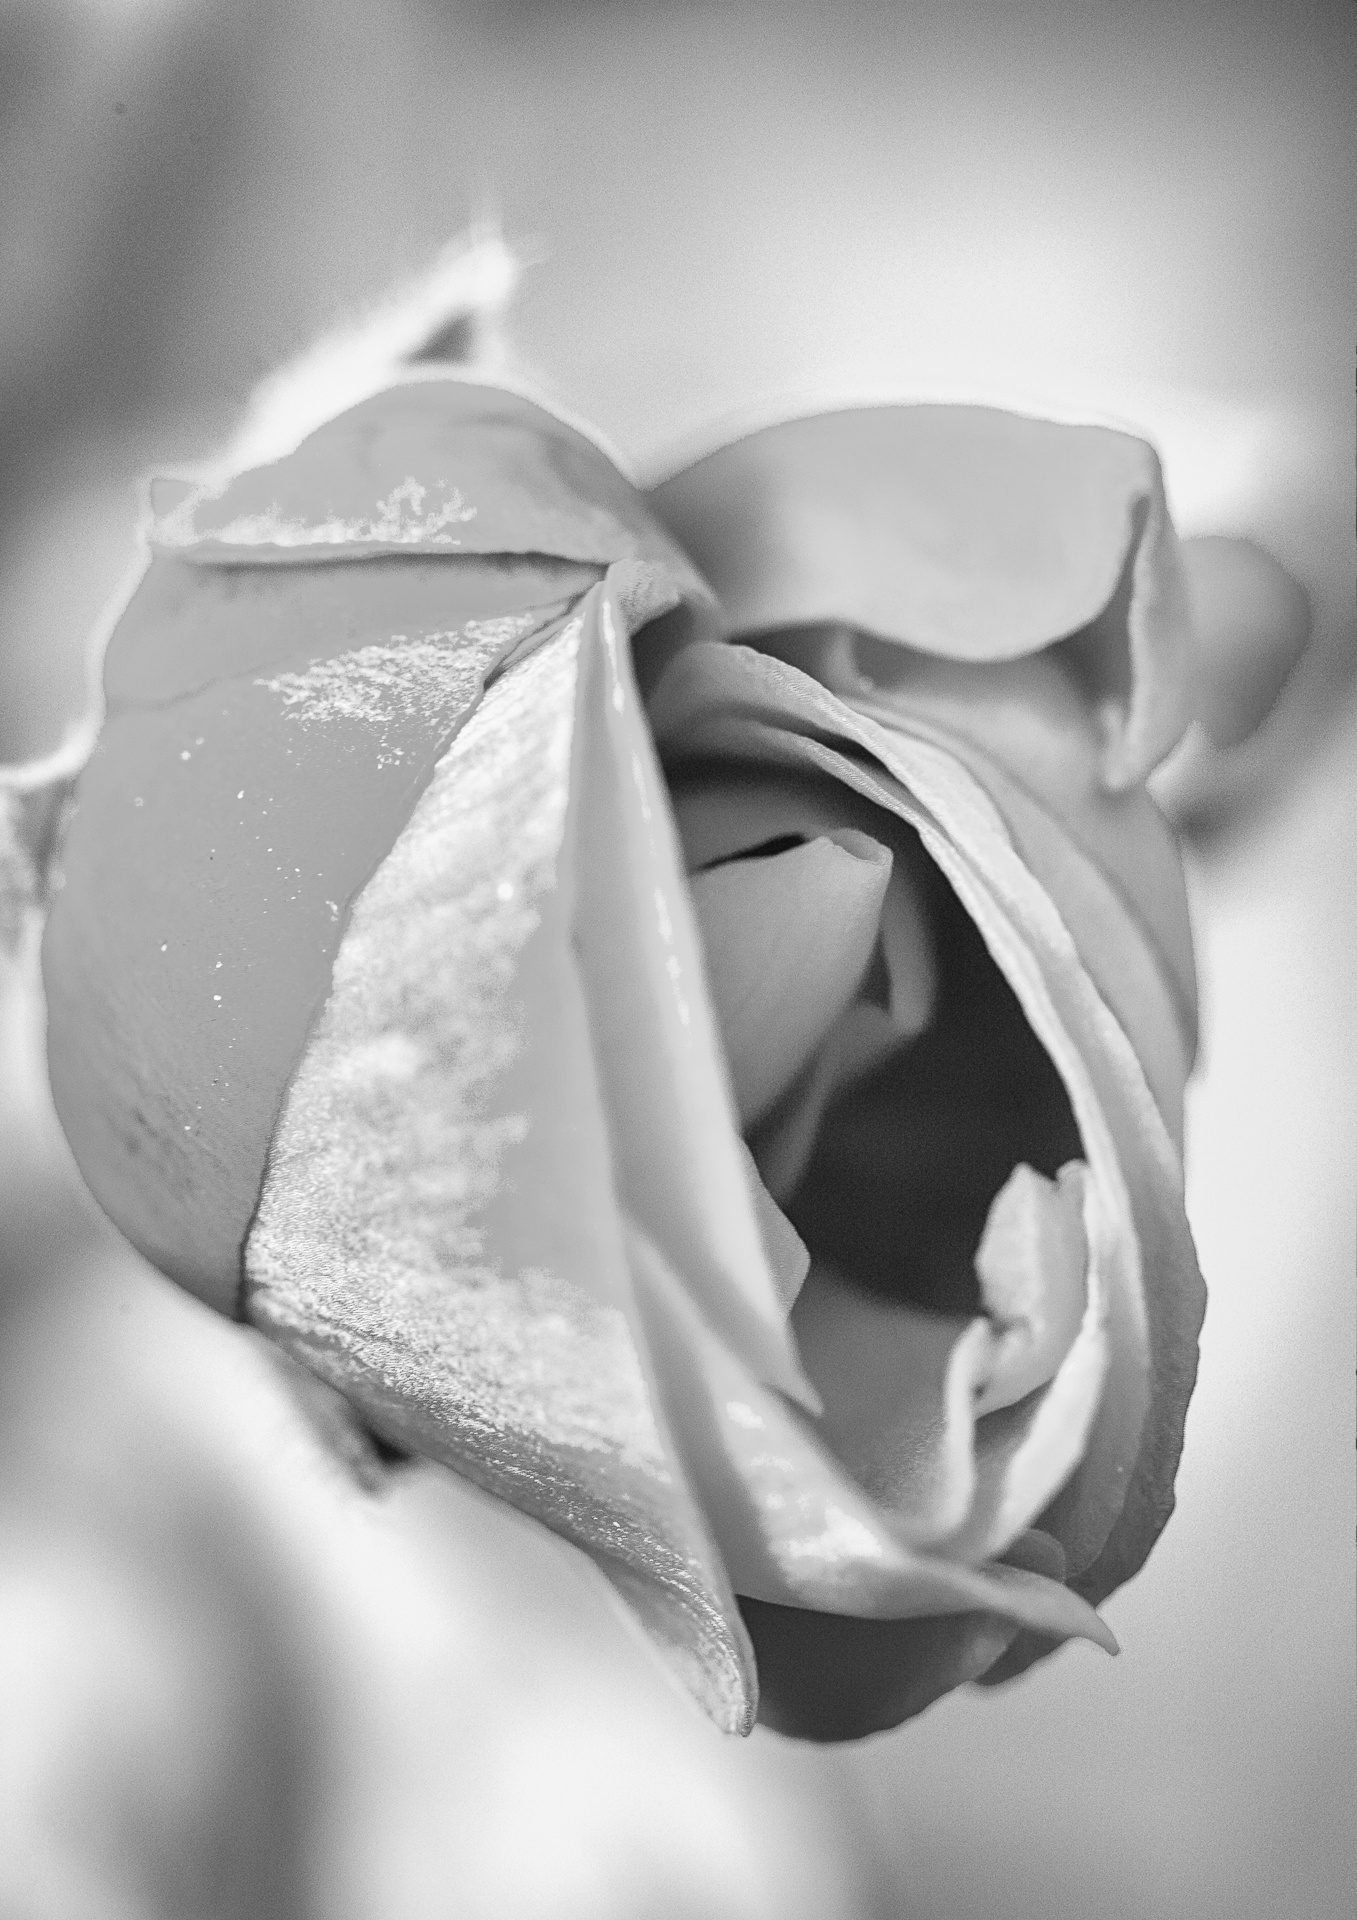 Rose bud partially open